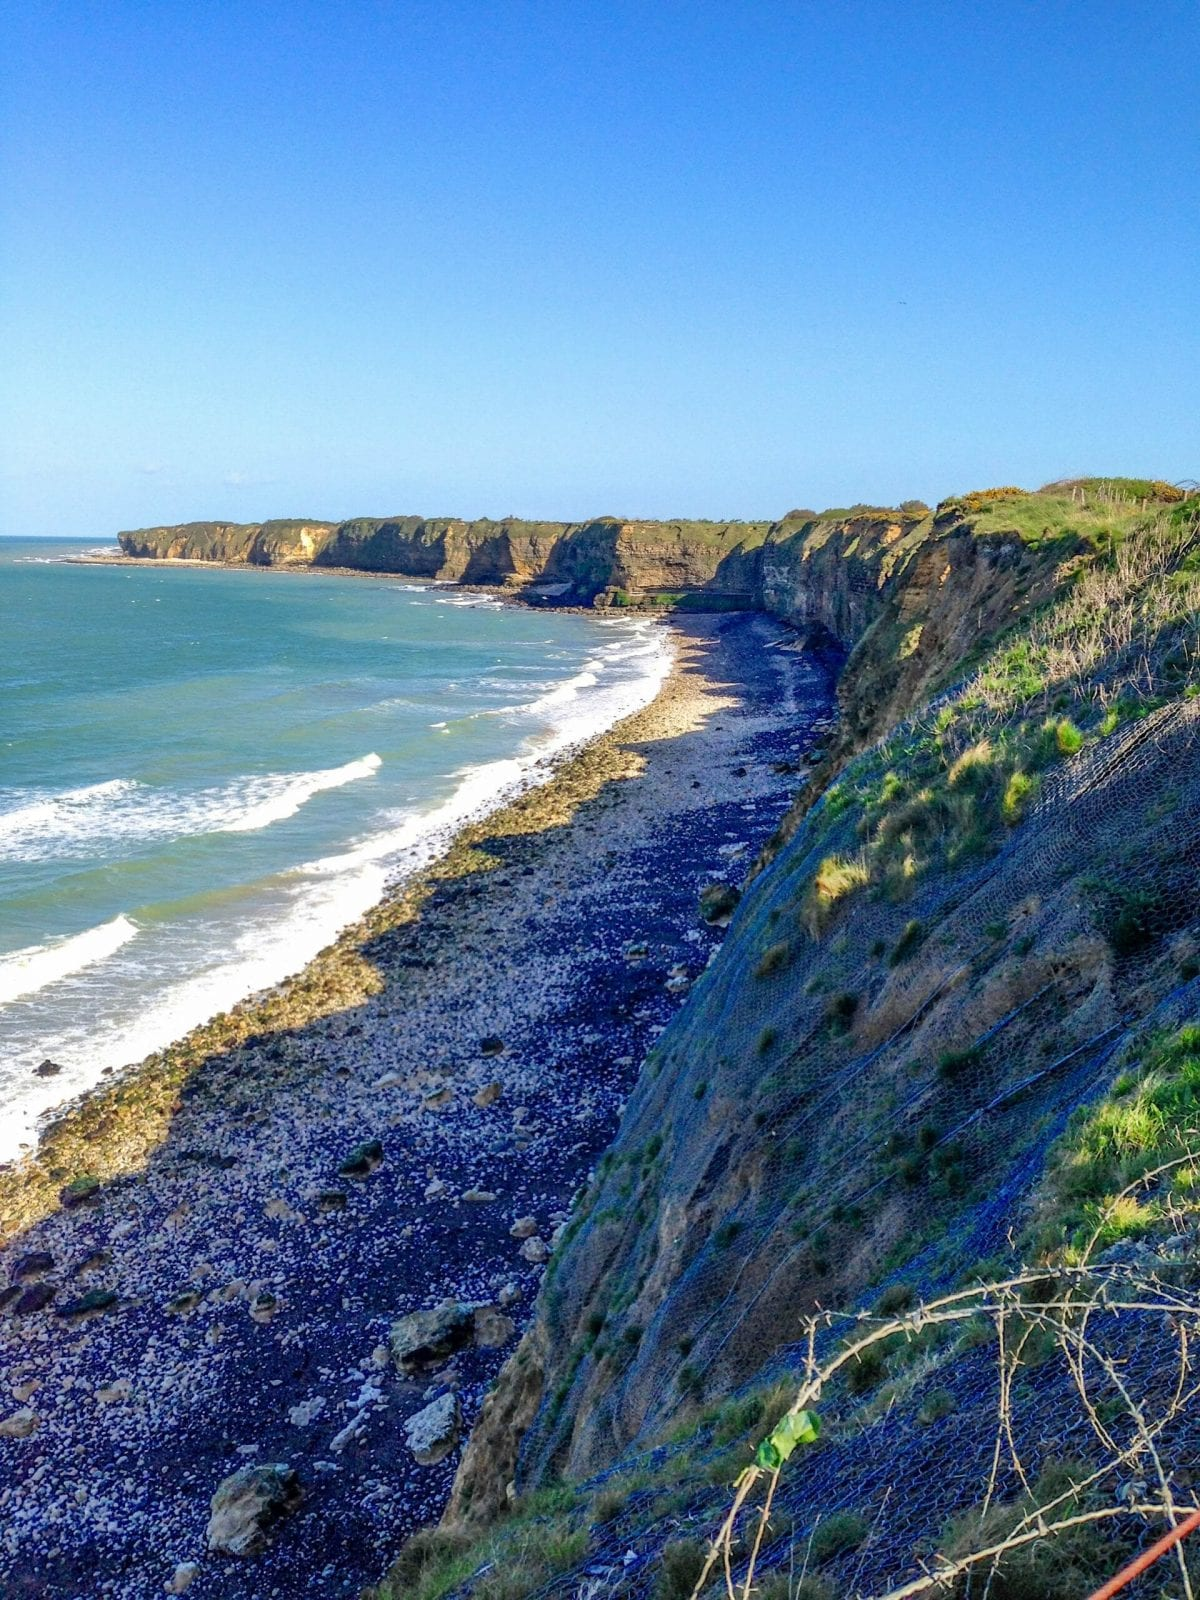 Normandy D-day beaches